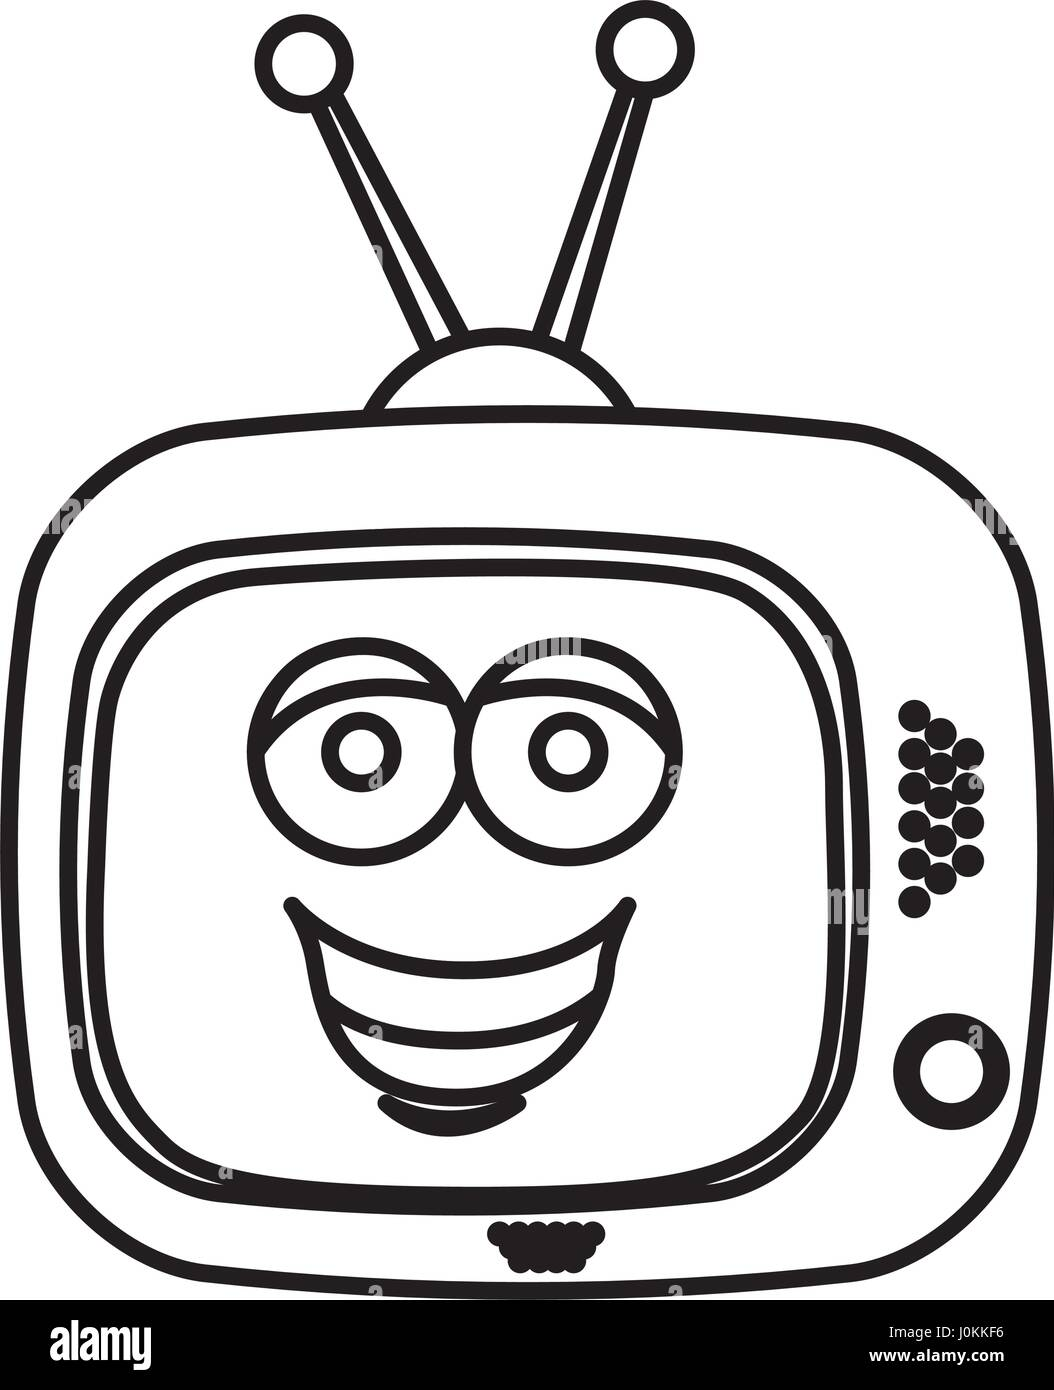 silhouette of antique tv device with smile face inside - Stock Vector